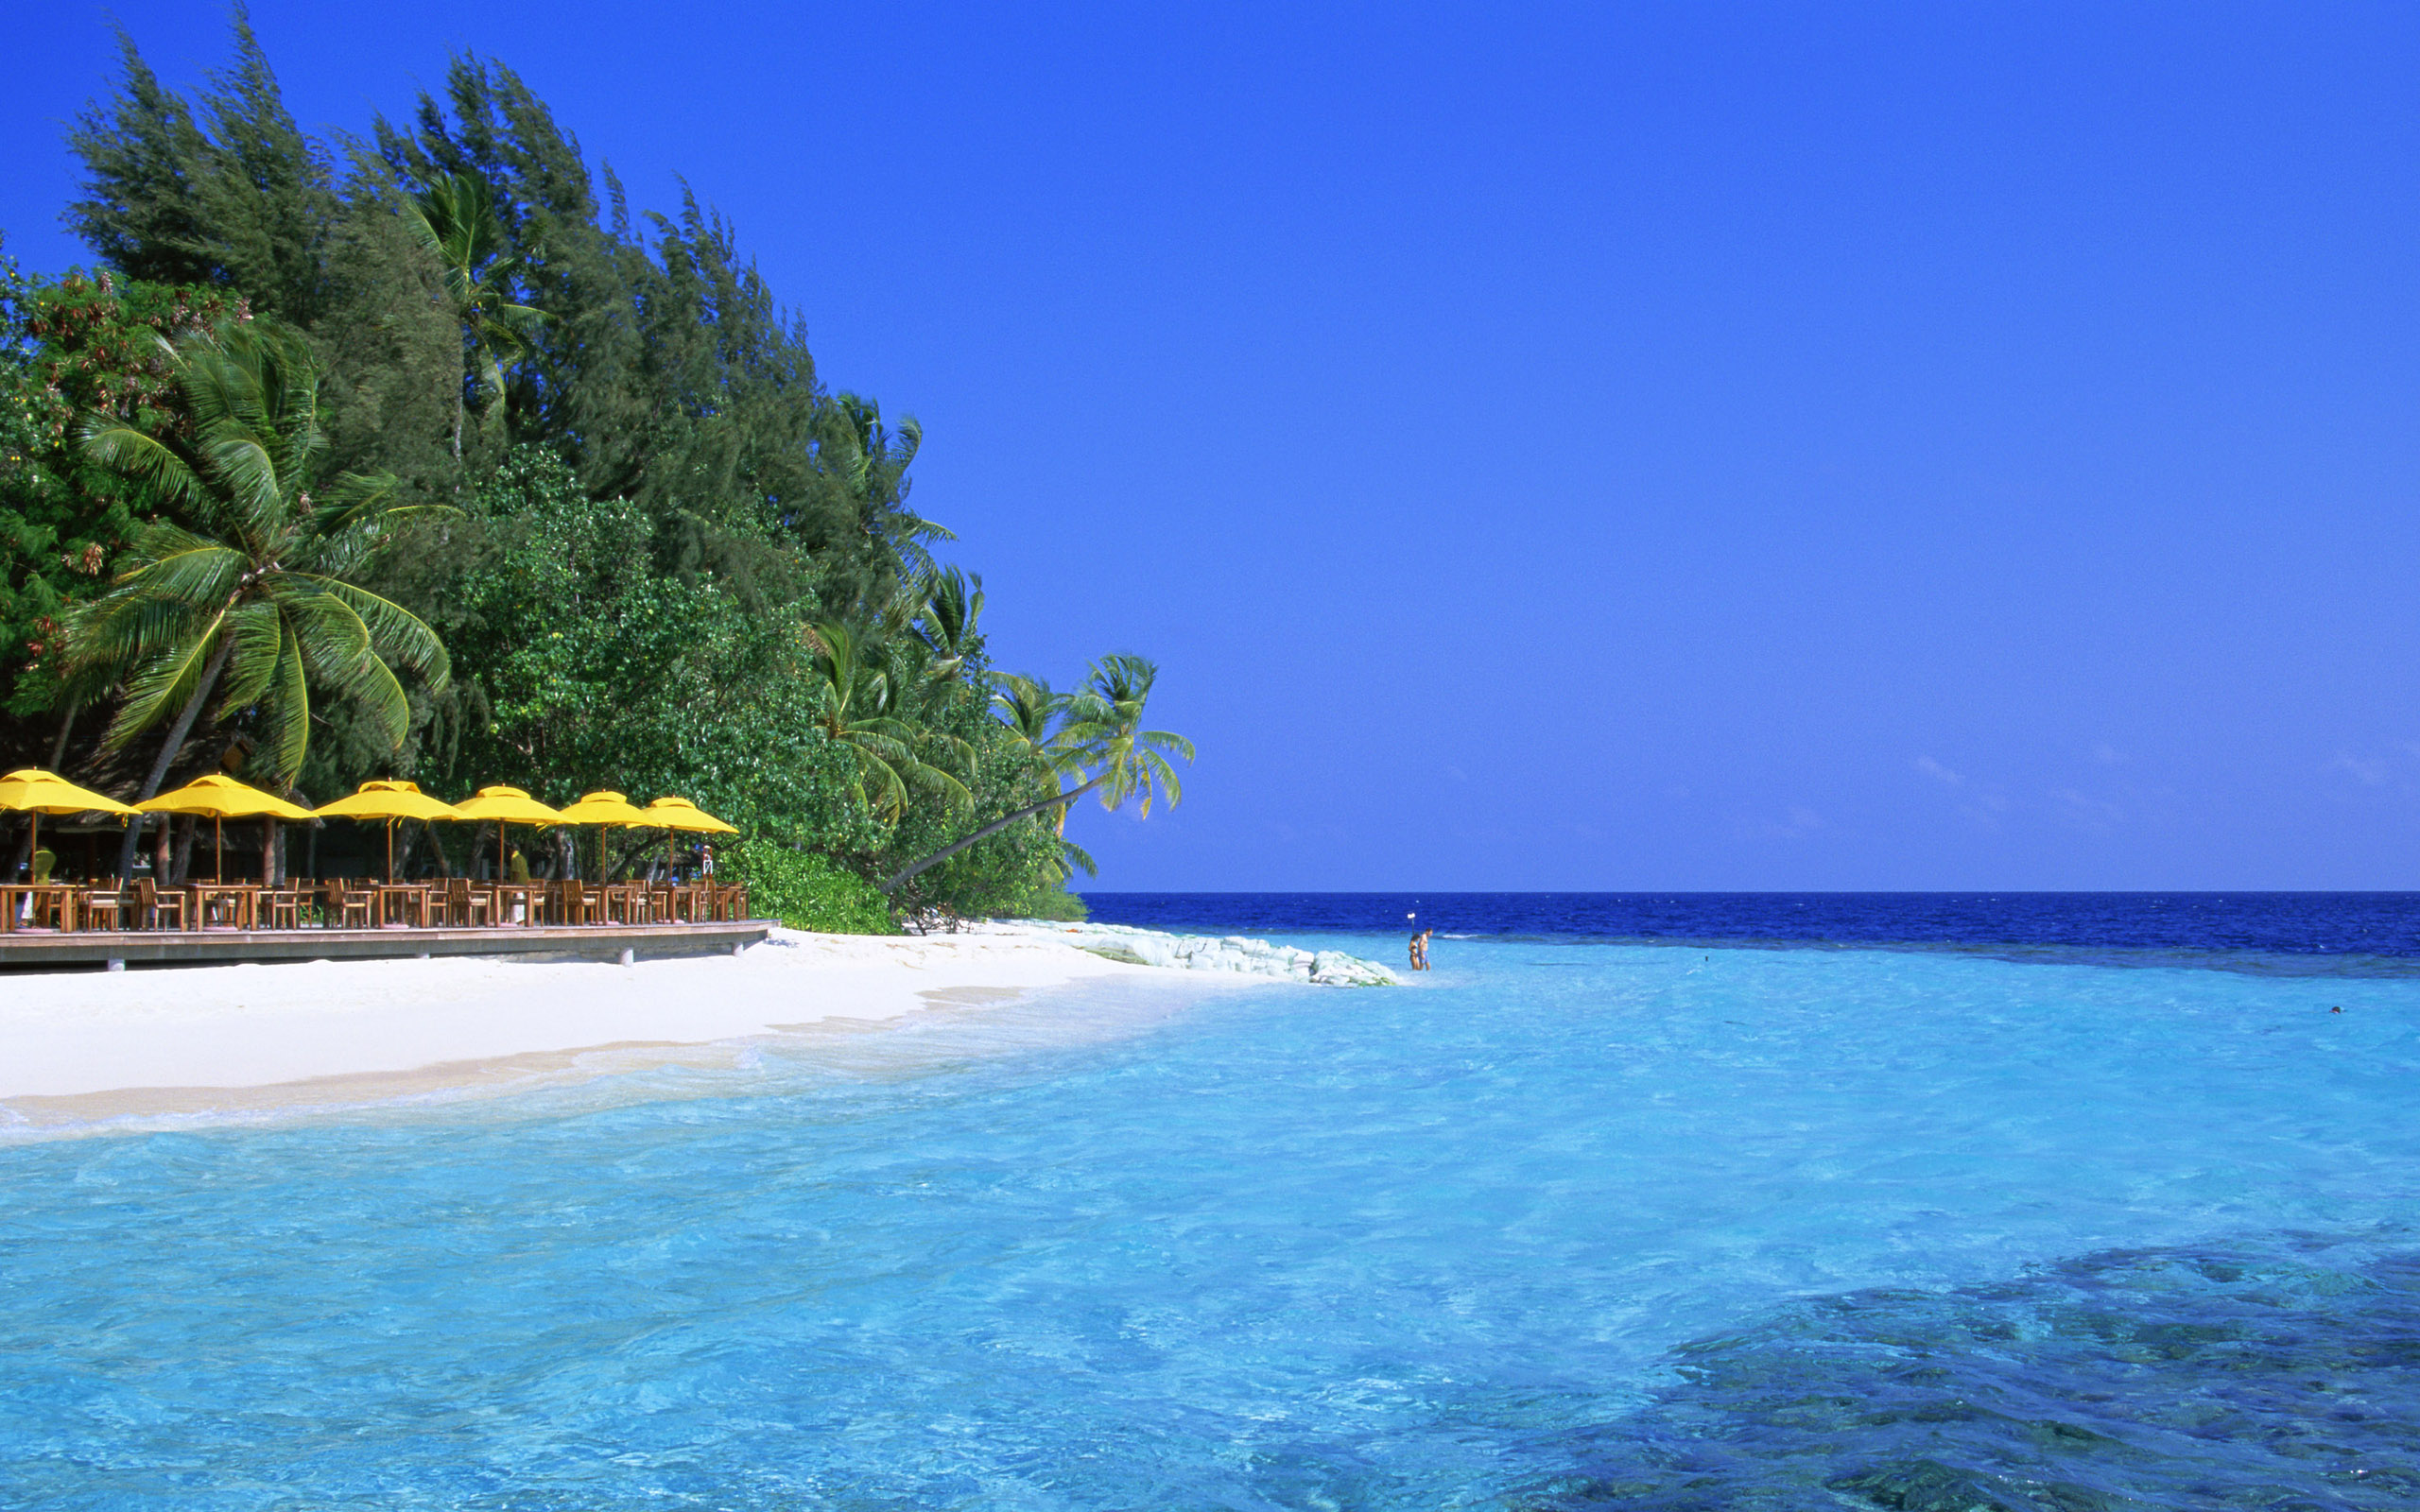 Wallpaper Of Beach: The Special Beaches Of Hawaii   Free Wallpaper ...